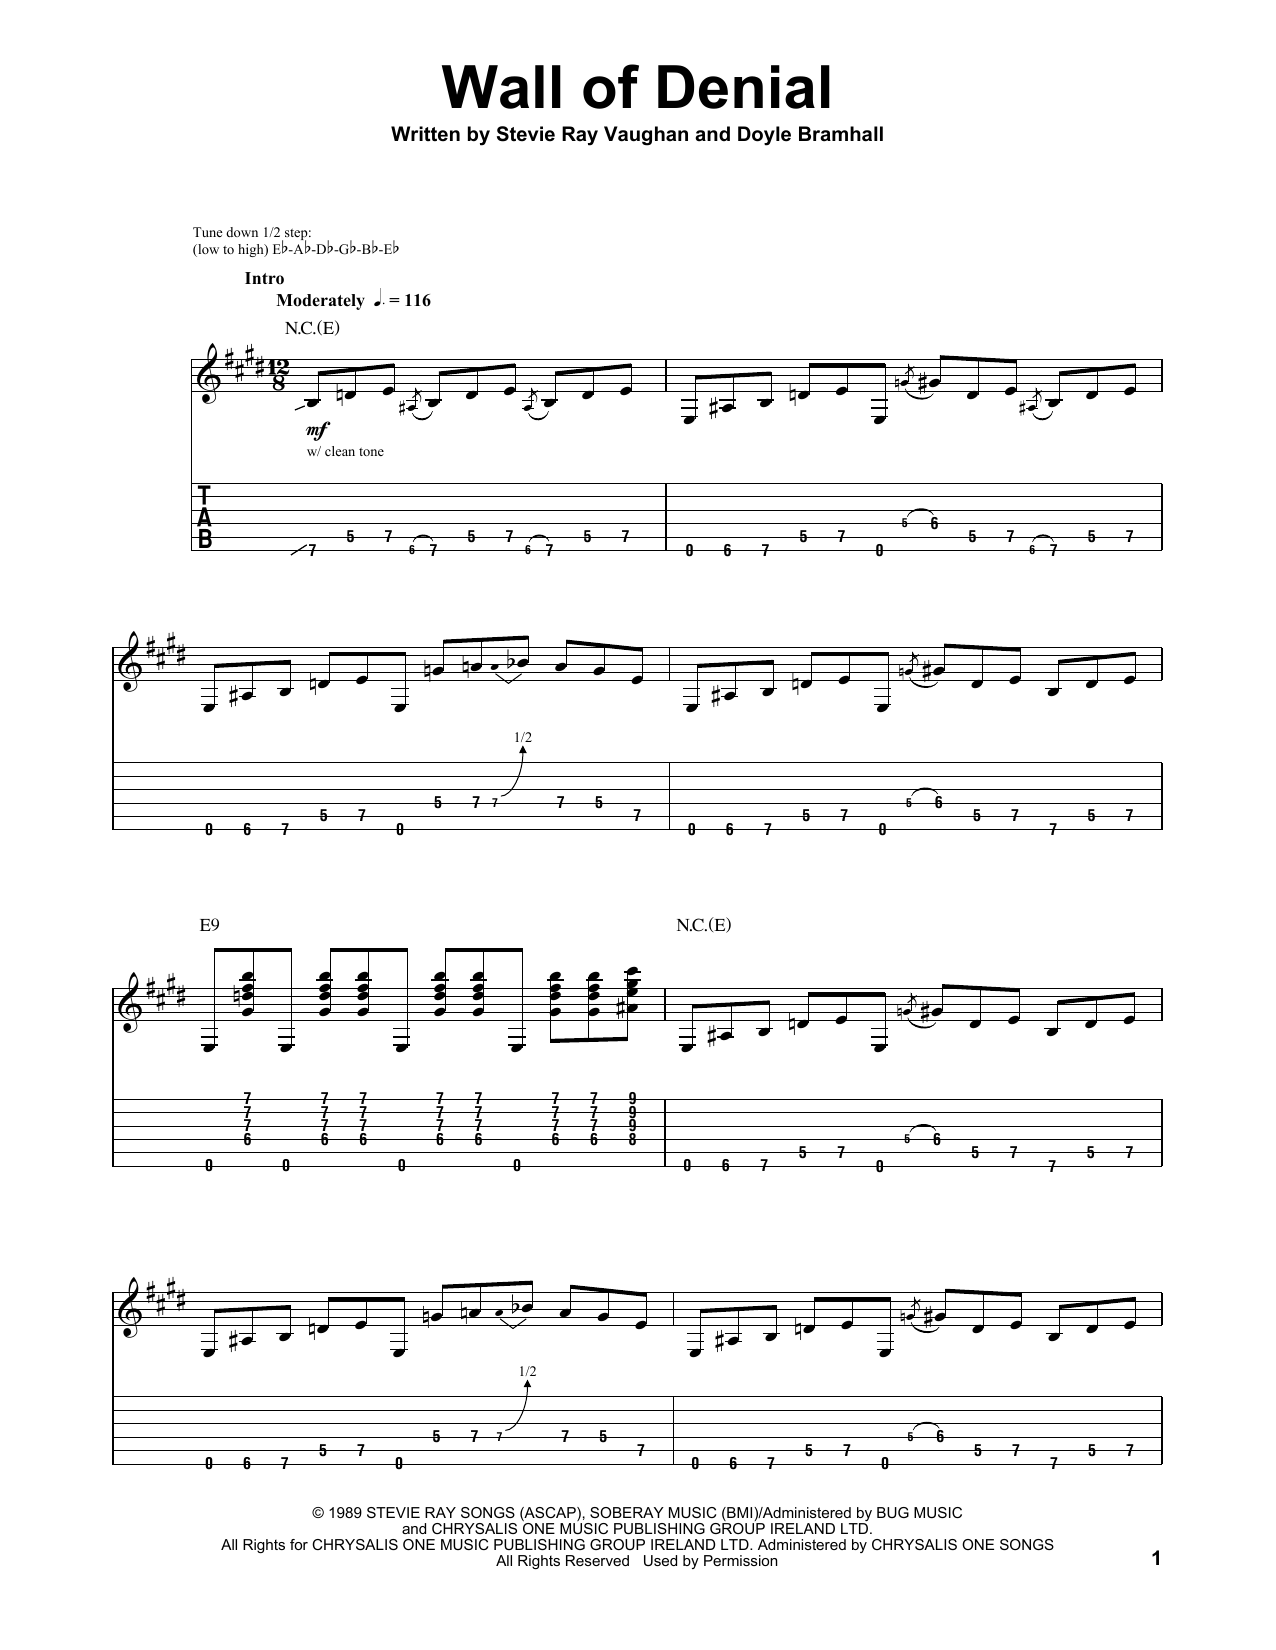 Stevie Ray Vaughan Wall Of Denial sheet music notes and chords. Download Printable PDF.